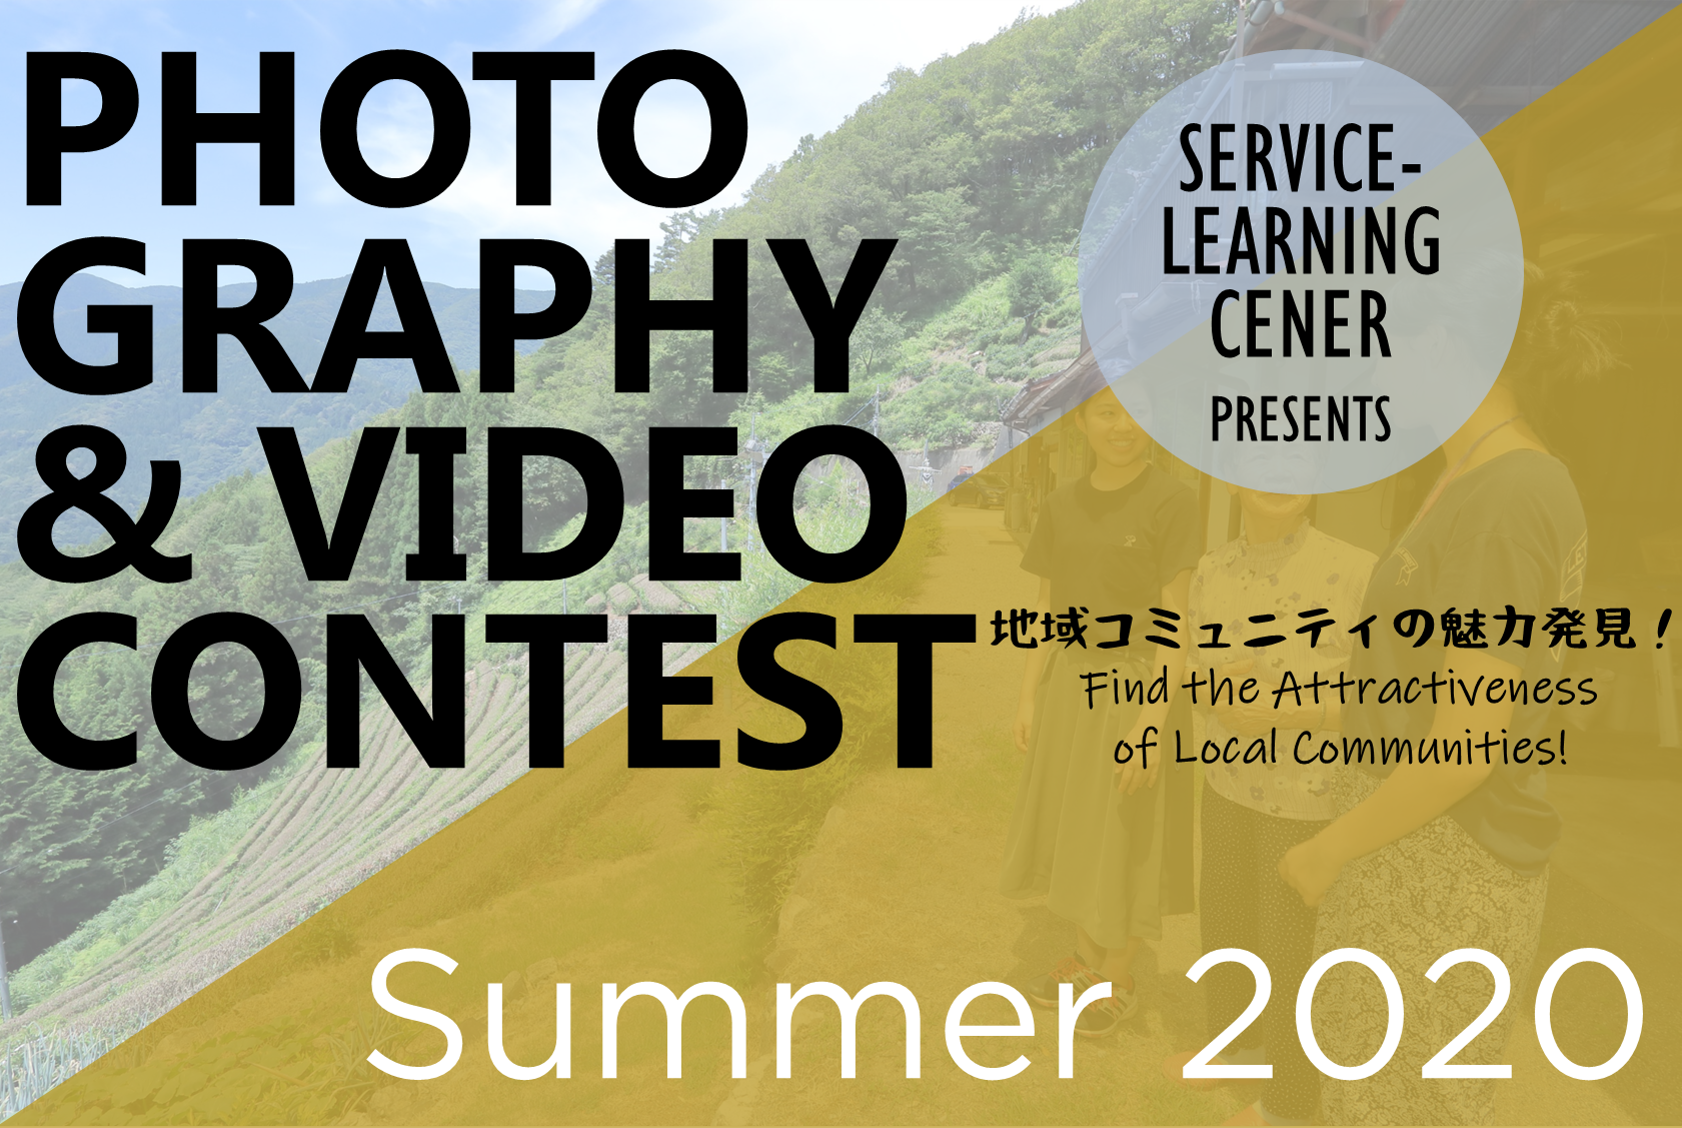 RESULTS: SL Photography & Video Contest in Summer 2020